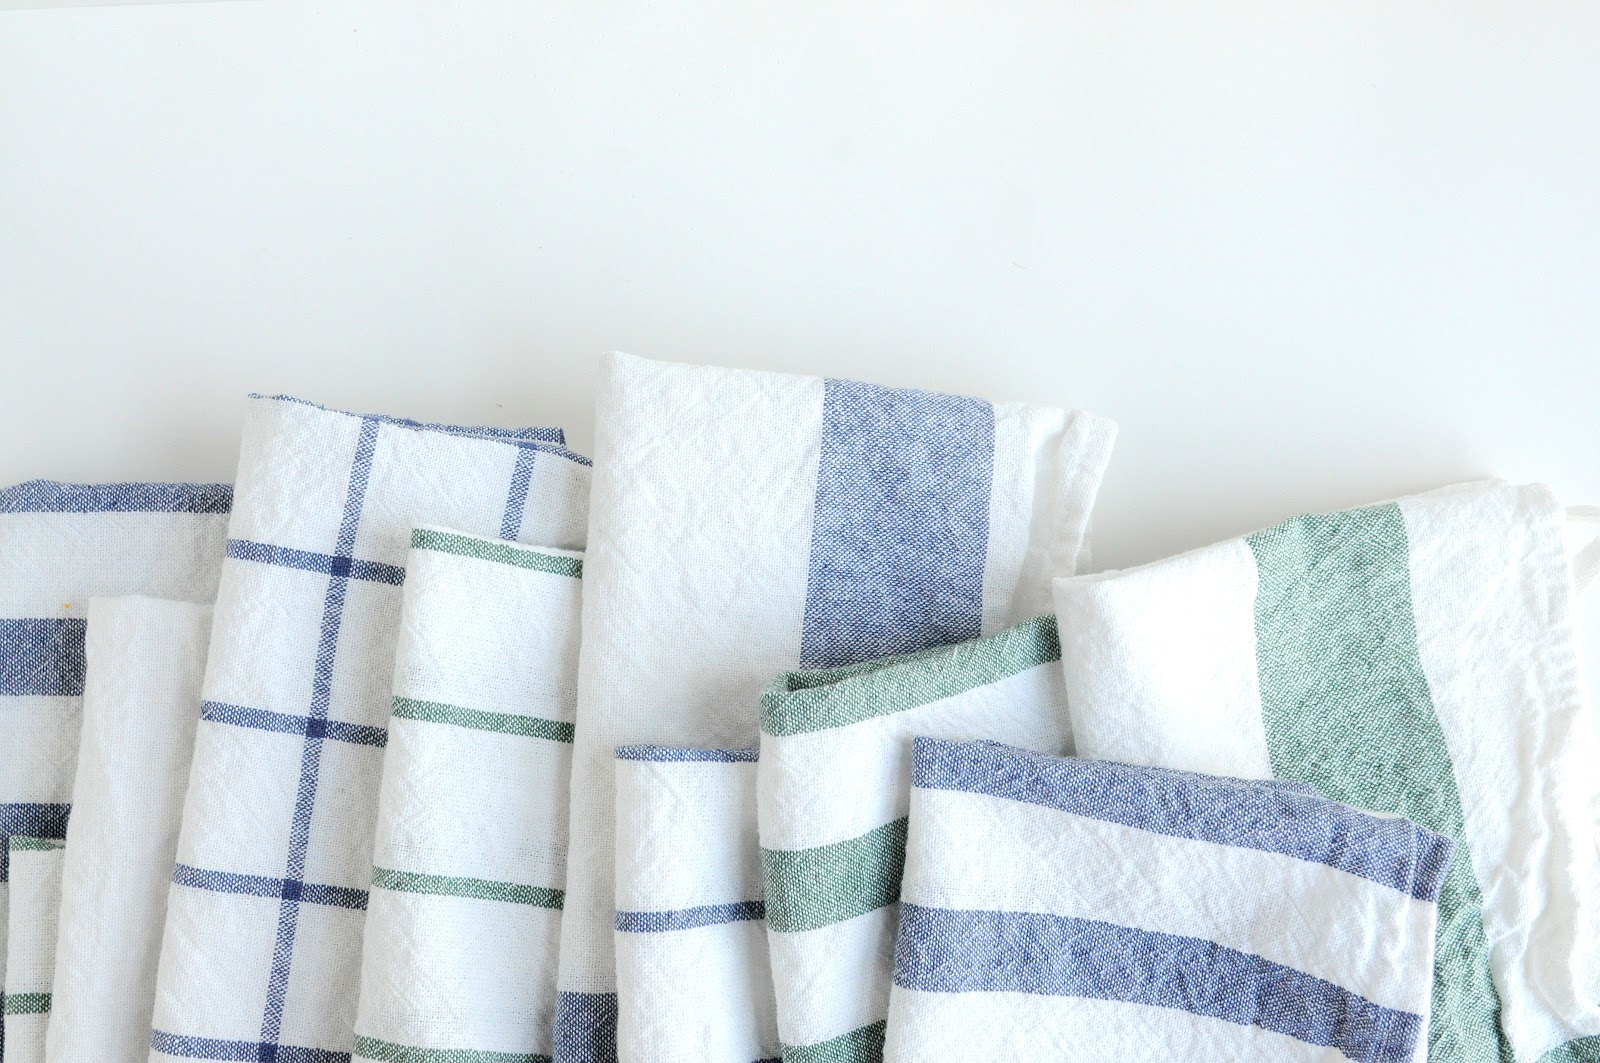 diy: easy cloth napkins from ikea dish towels